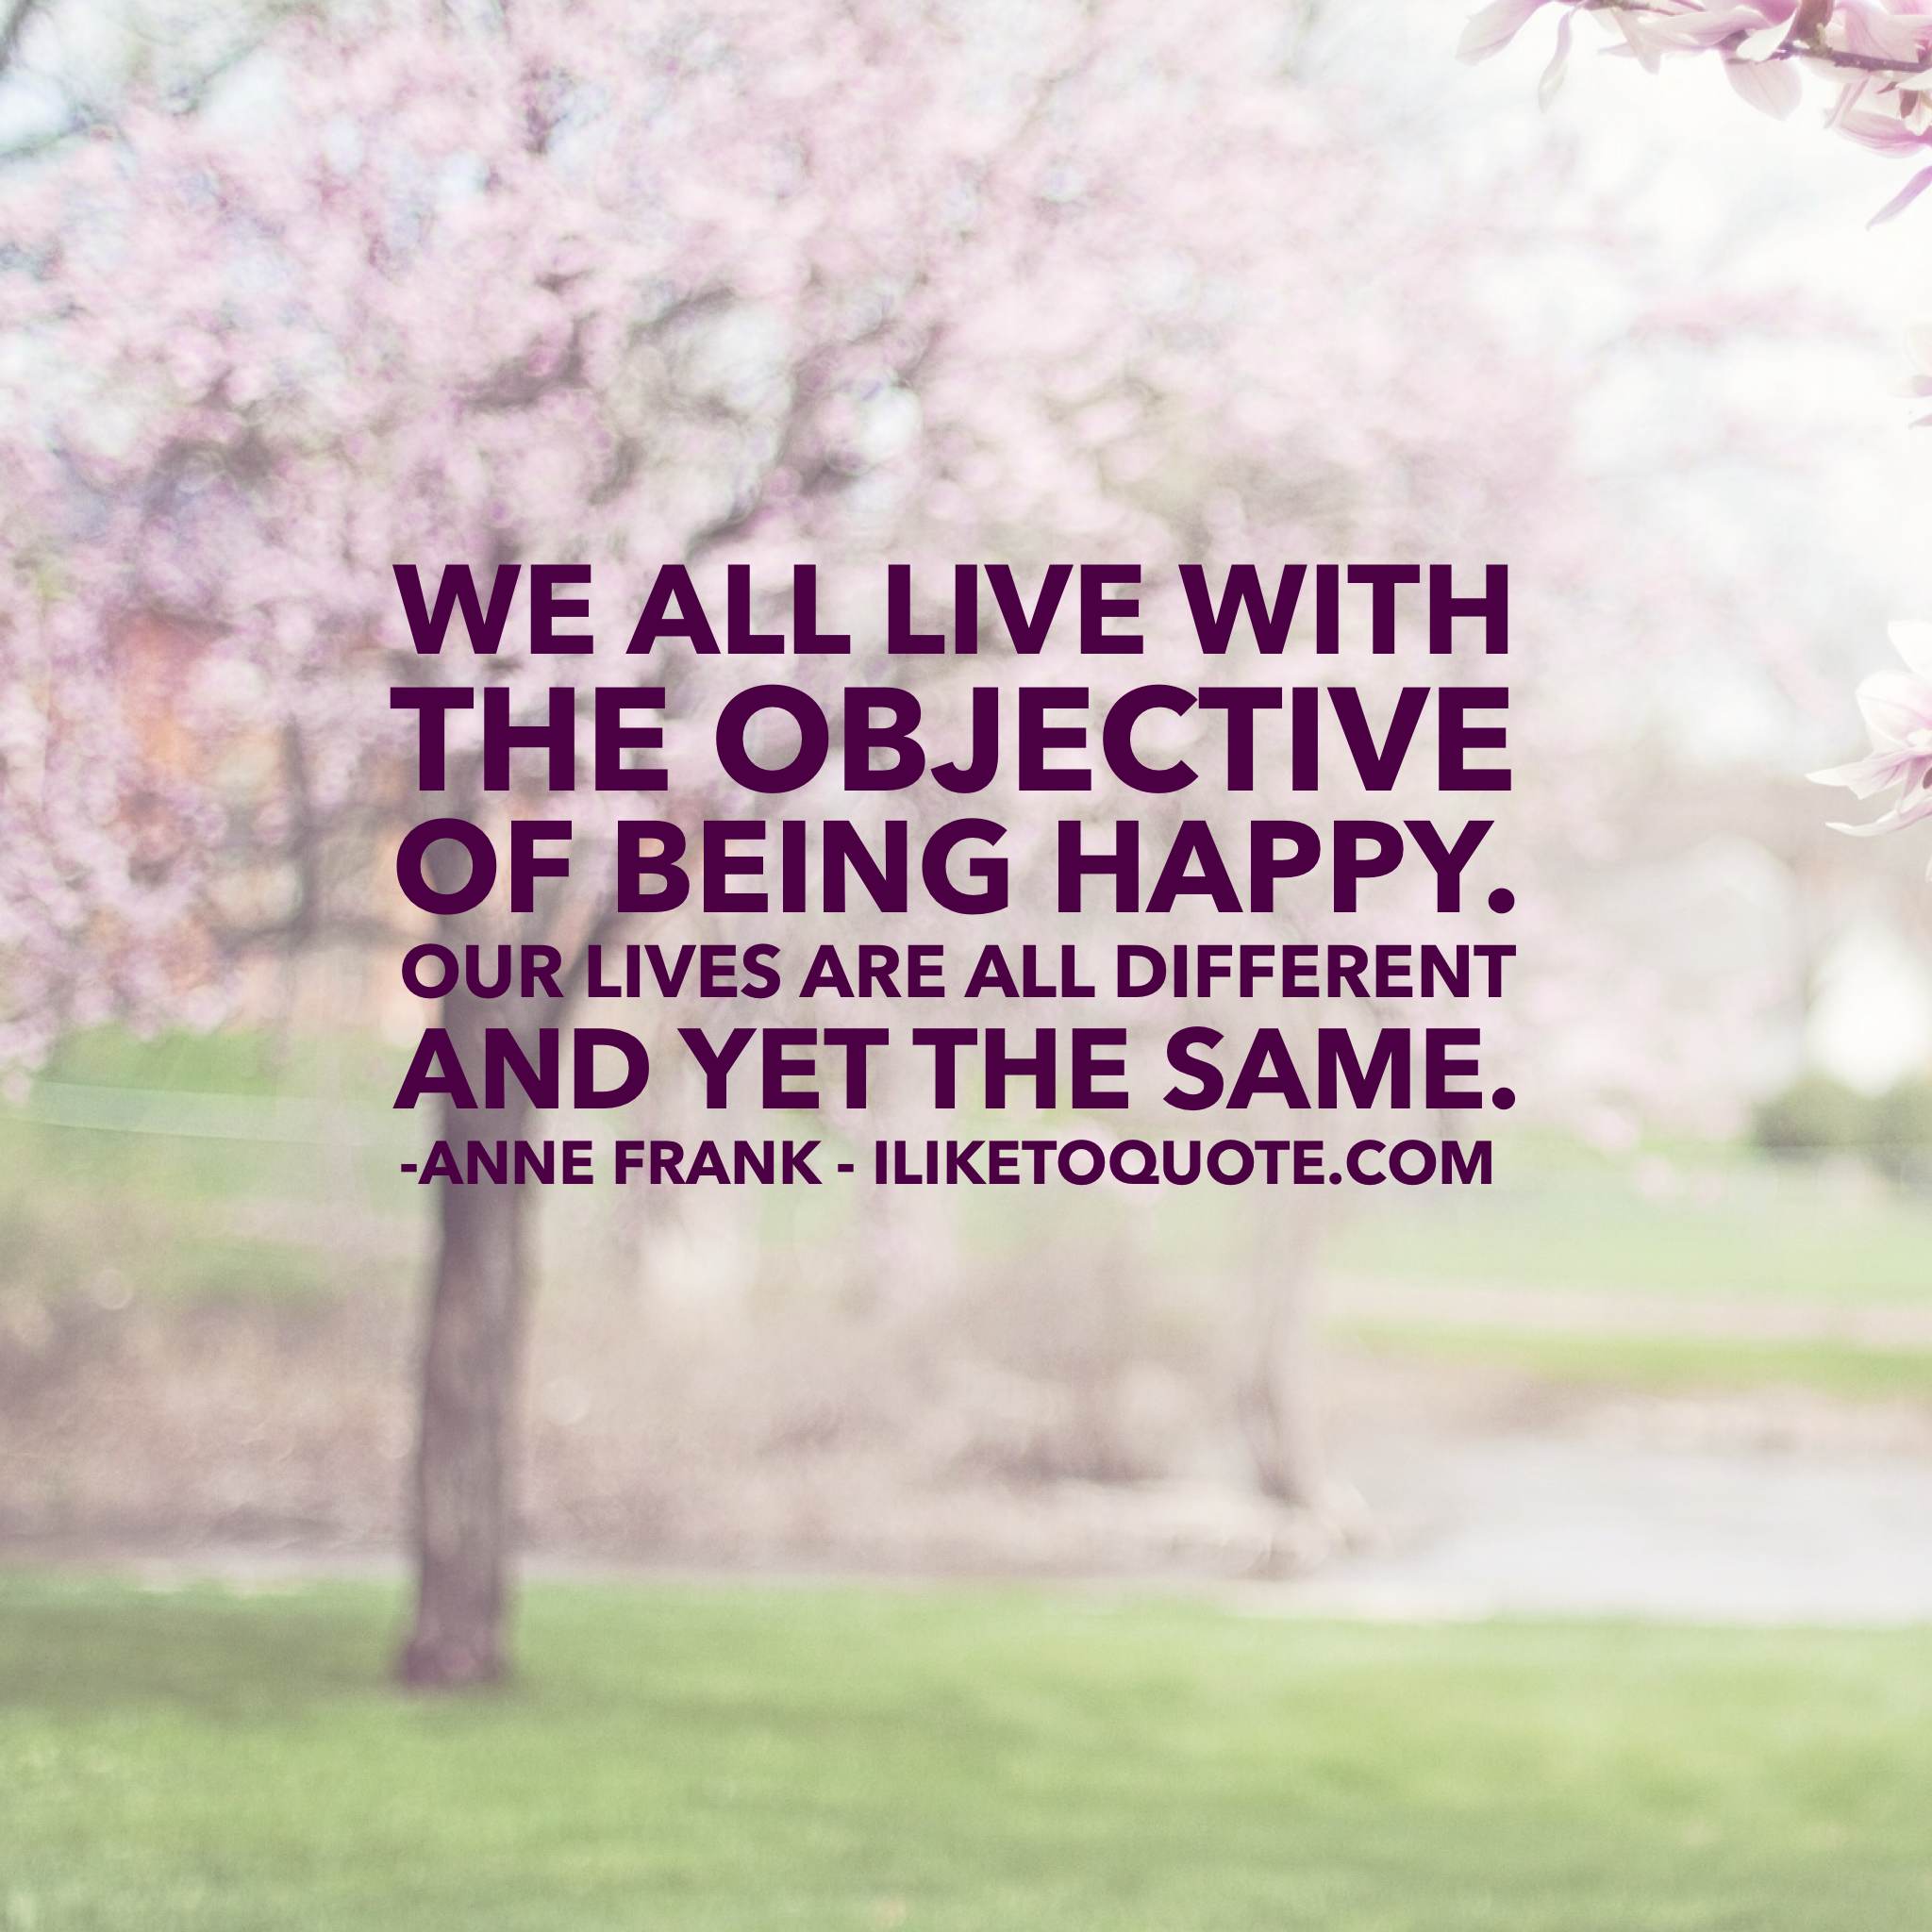 We all live with the objective of being happy. Our lives are all different and yet the same.  #happinessl #quotes #annefrank